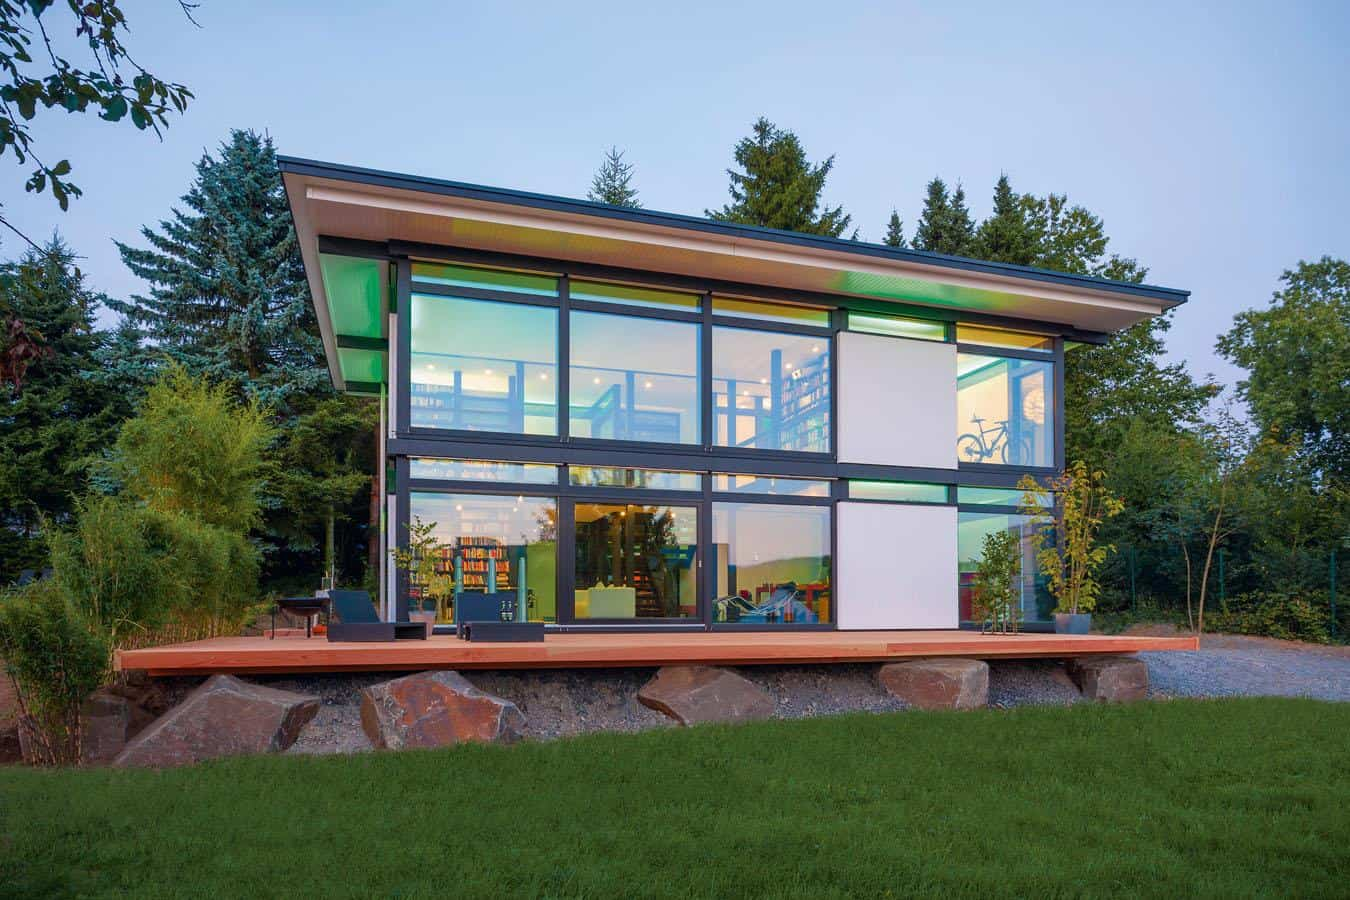 Huf haus modum new prefab house concept for intelligent for Prefabricated homes seattle